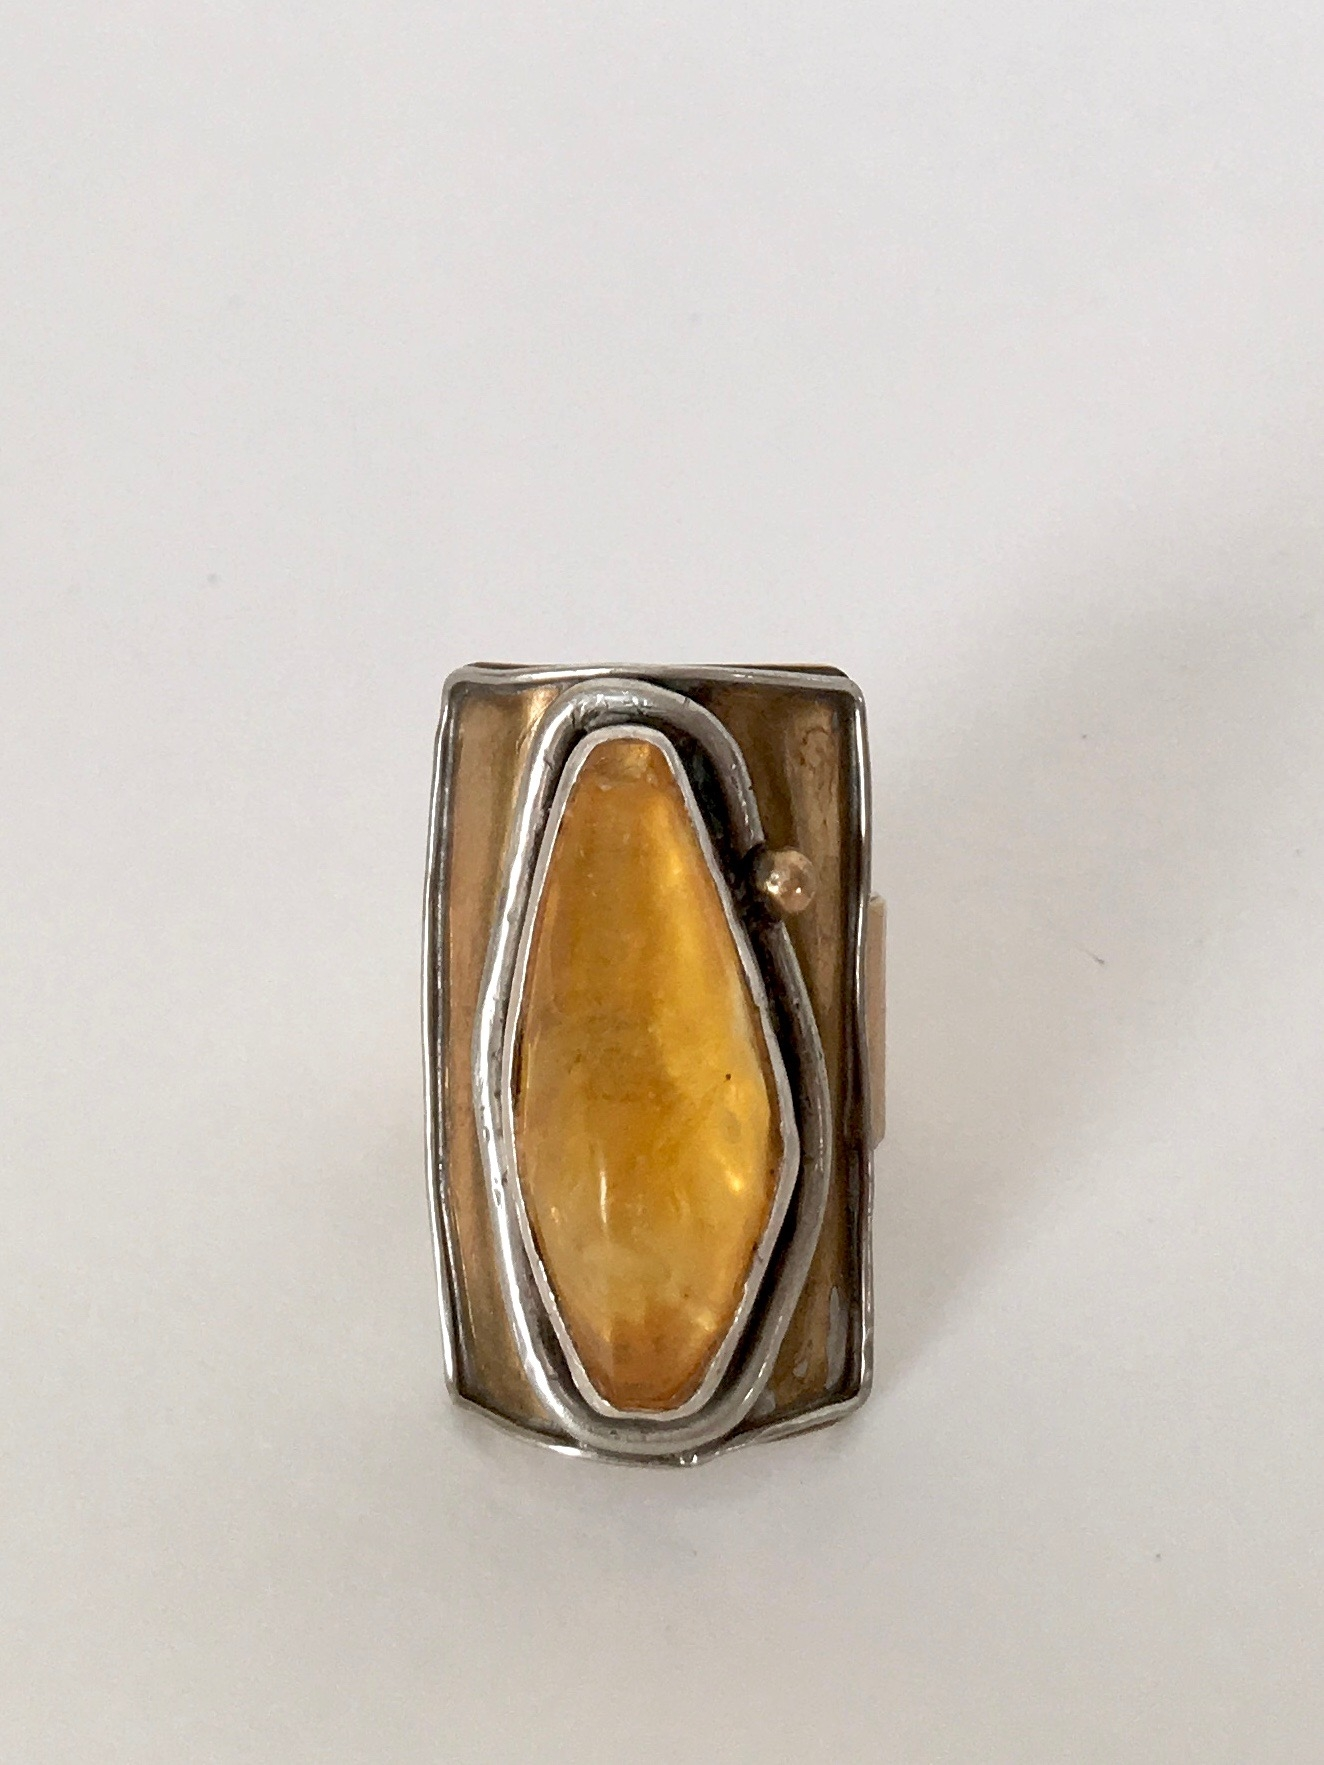 Brass, silver, Lithuanian Amber. 2013